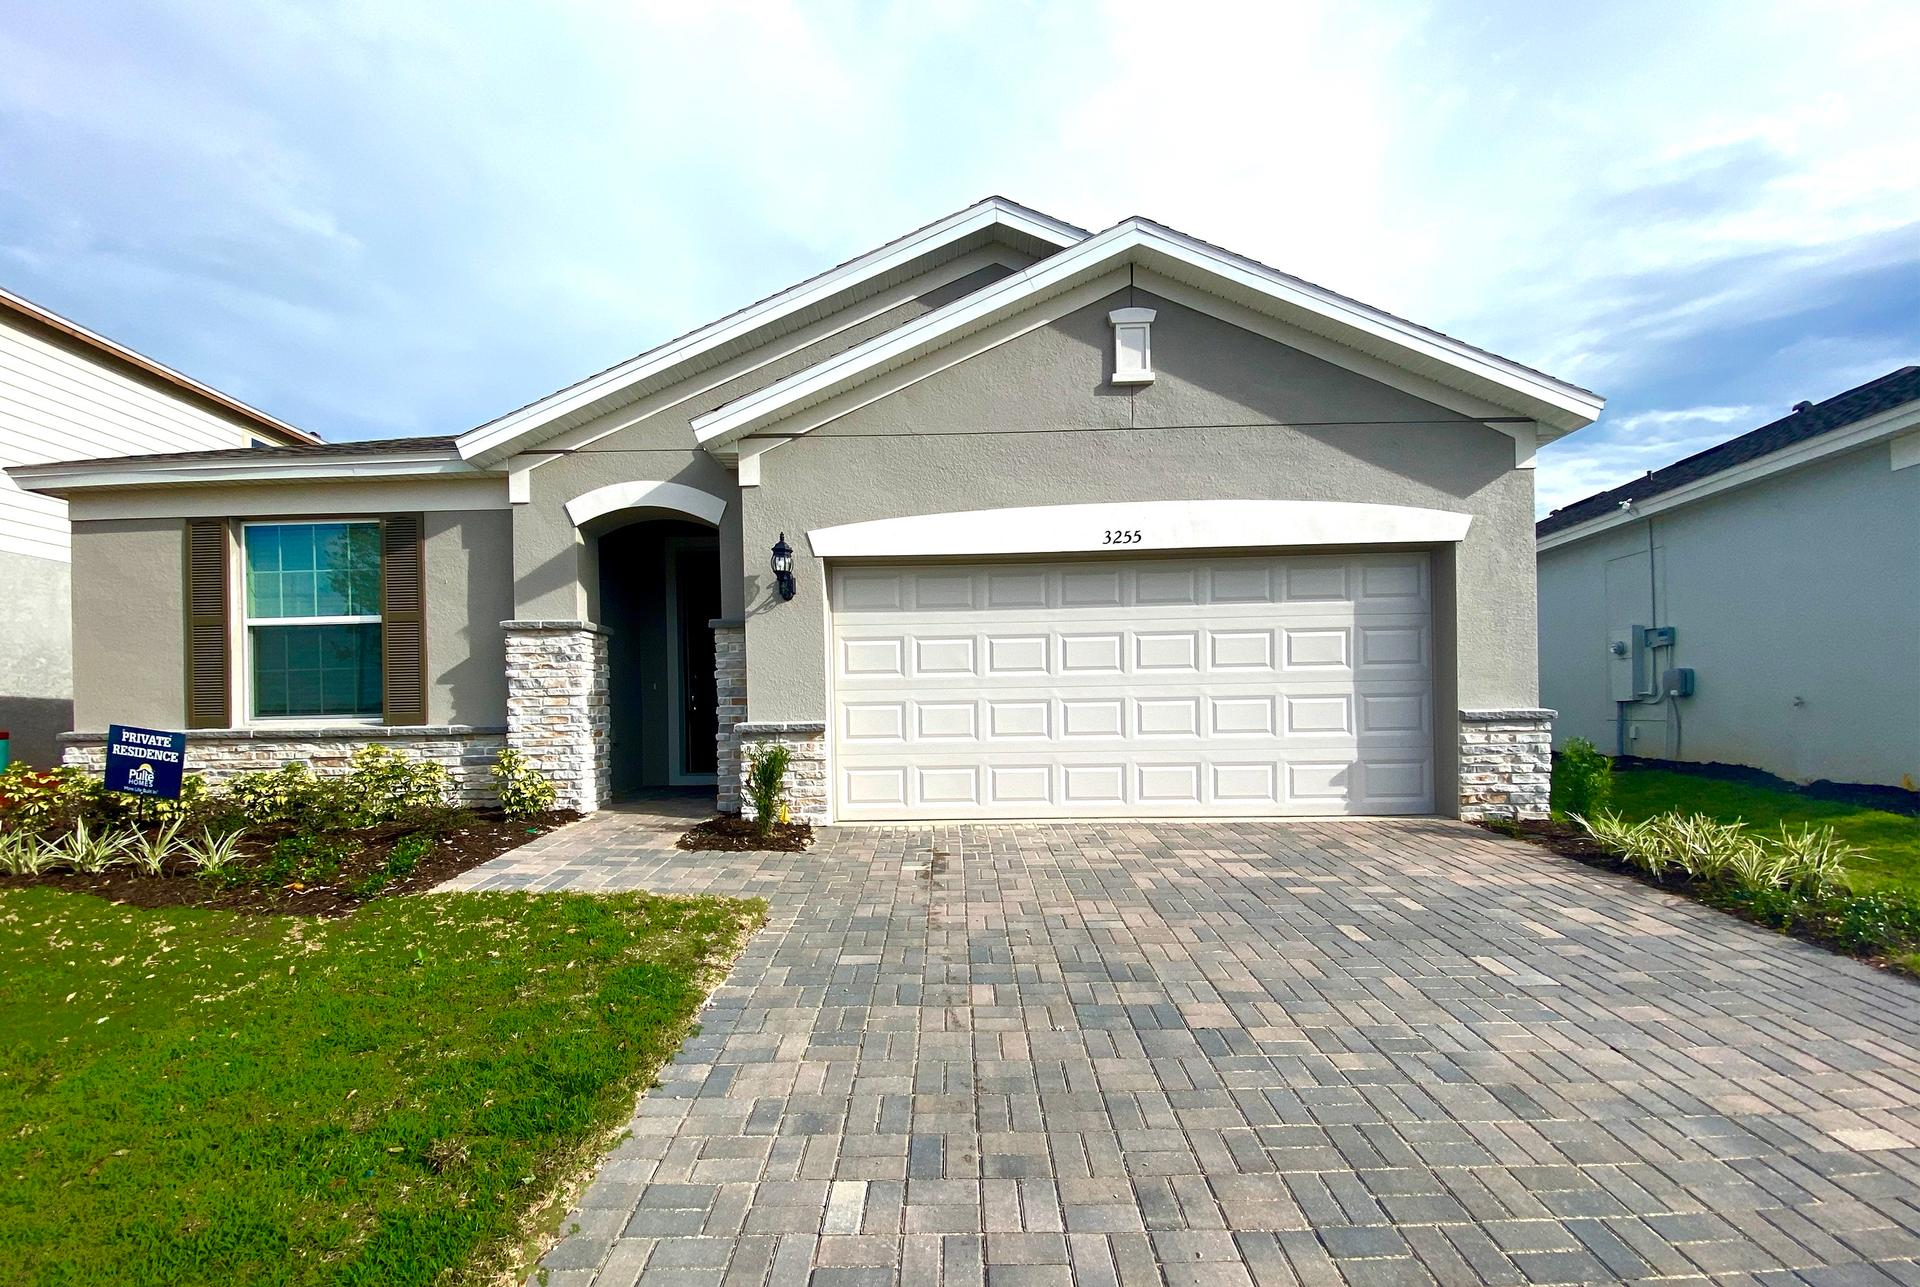 Photo of property: 3255 Bouy Cir, Winter Garden, FL 34787